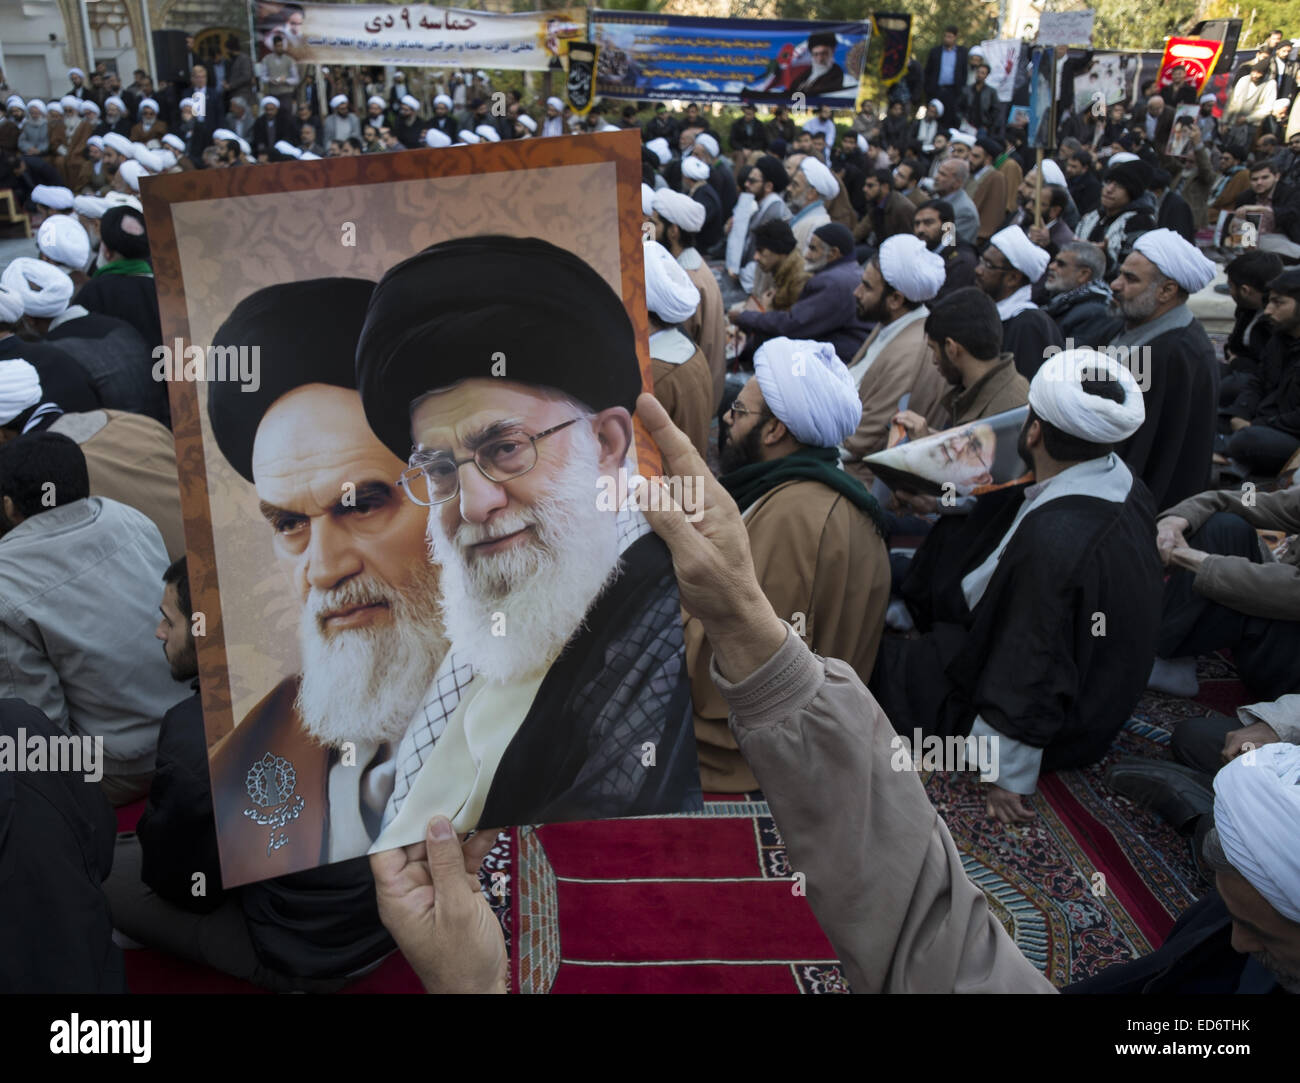 Qom, Iran. 30th Dec, 2014. An Iranian cleric and other men hold posters with portraits of Iran's Supreme Leader - Stock Image